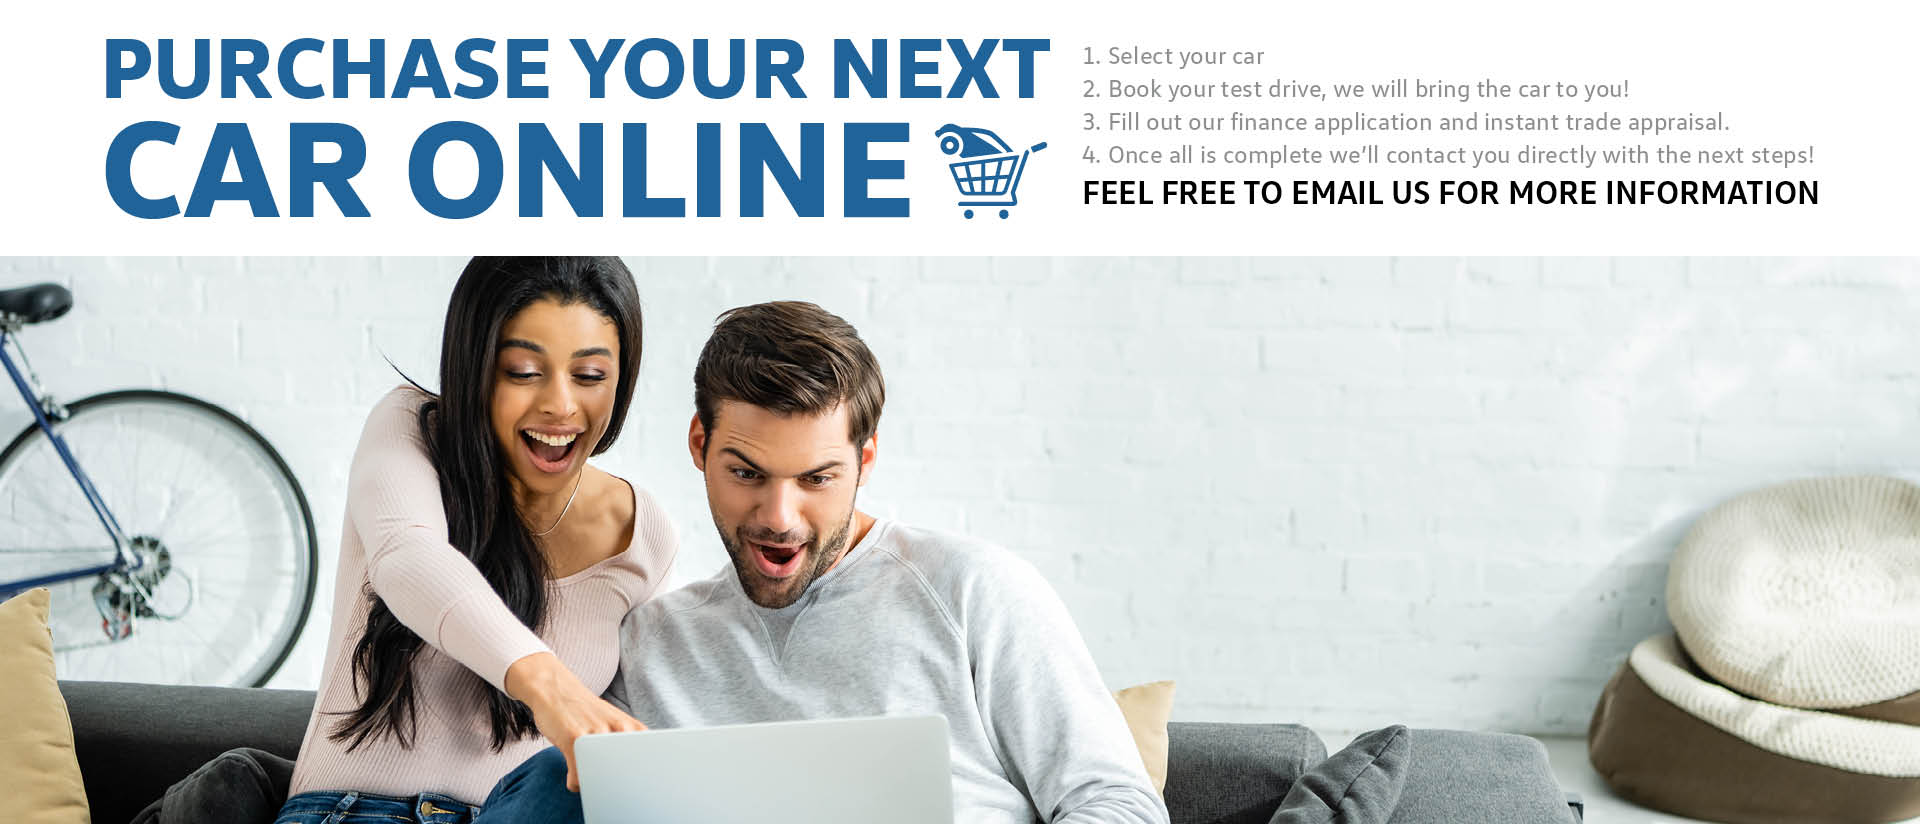 Purchase Your Next Car Online